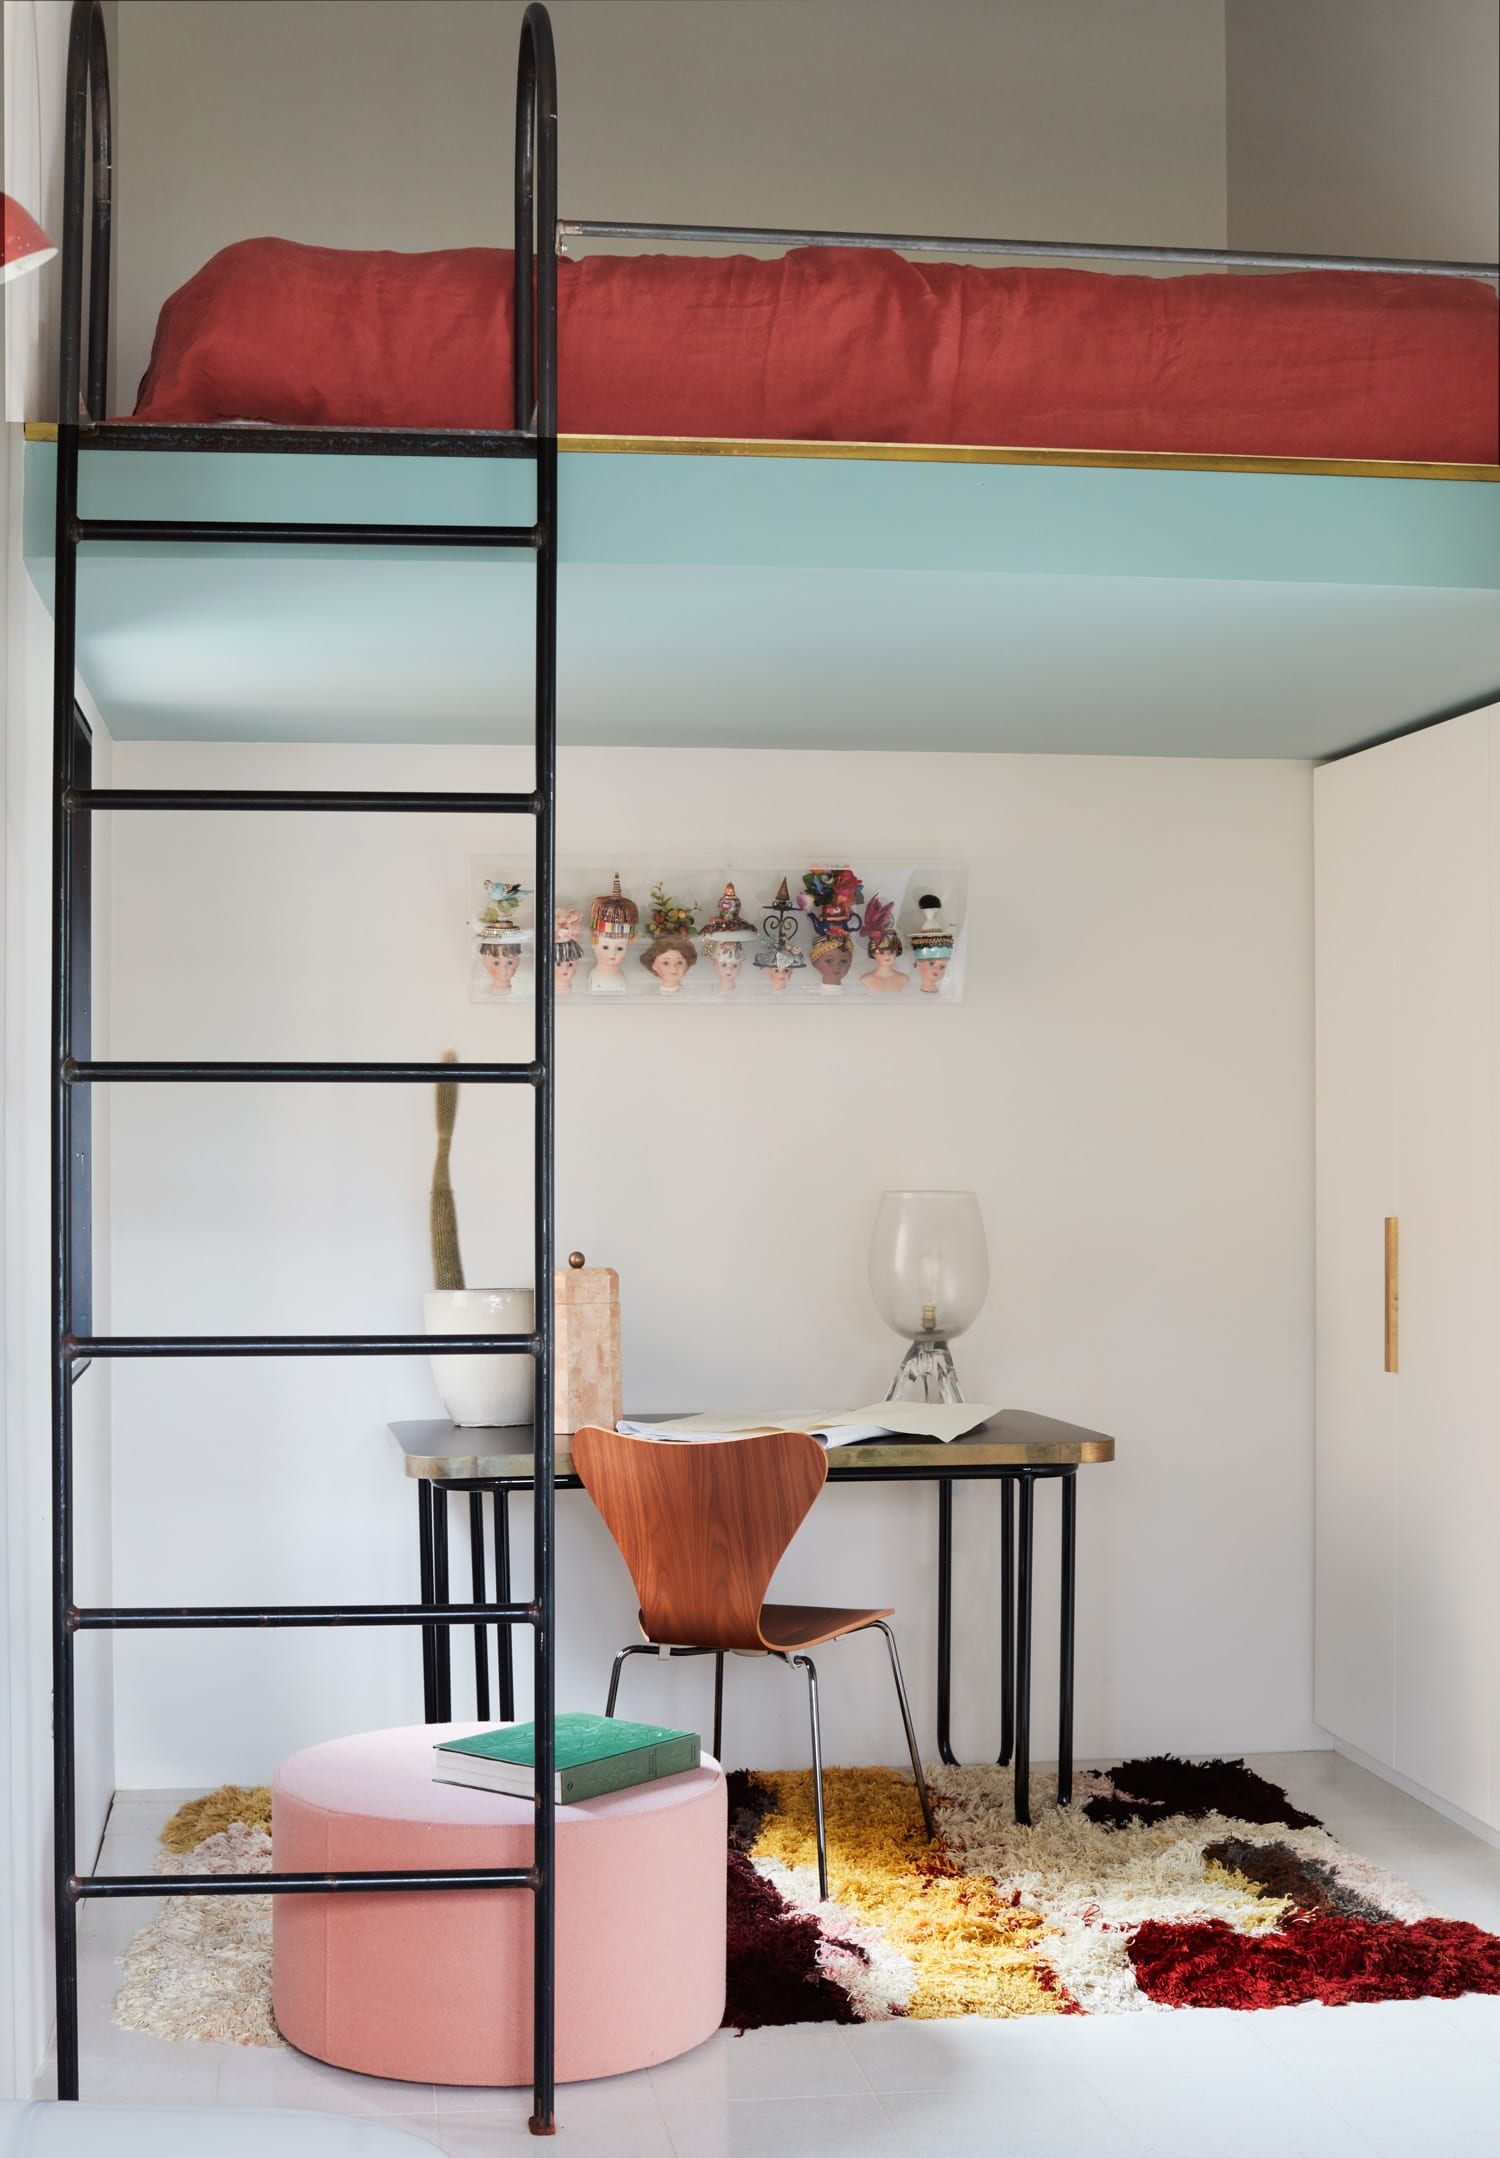 Polychrome House in Cronulla, Sydney by Amber Road | Yellowtrace